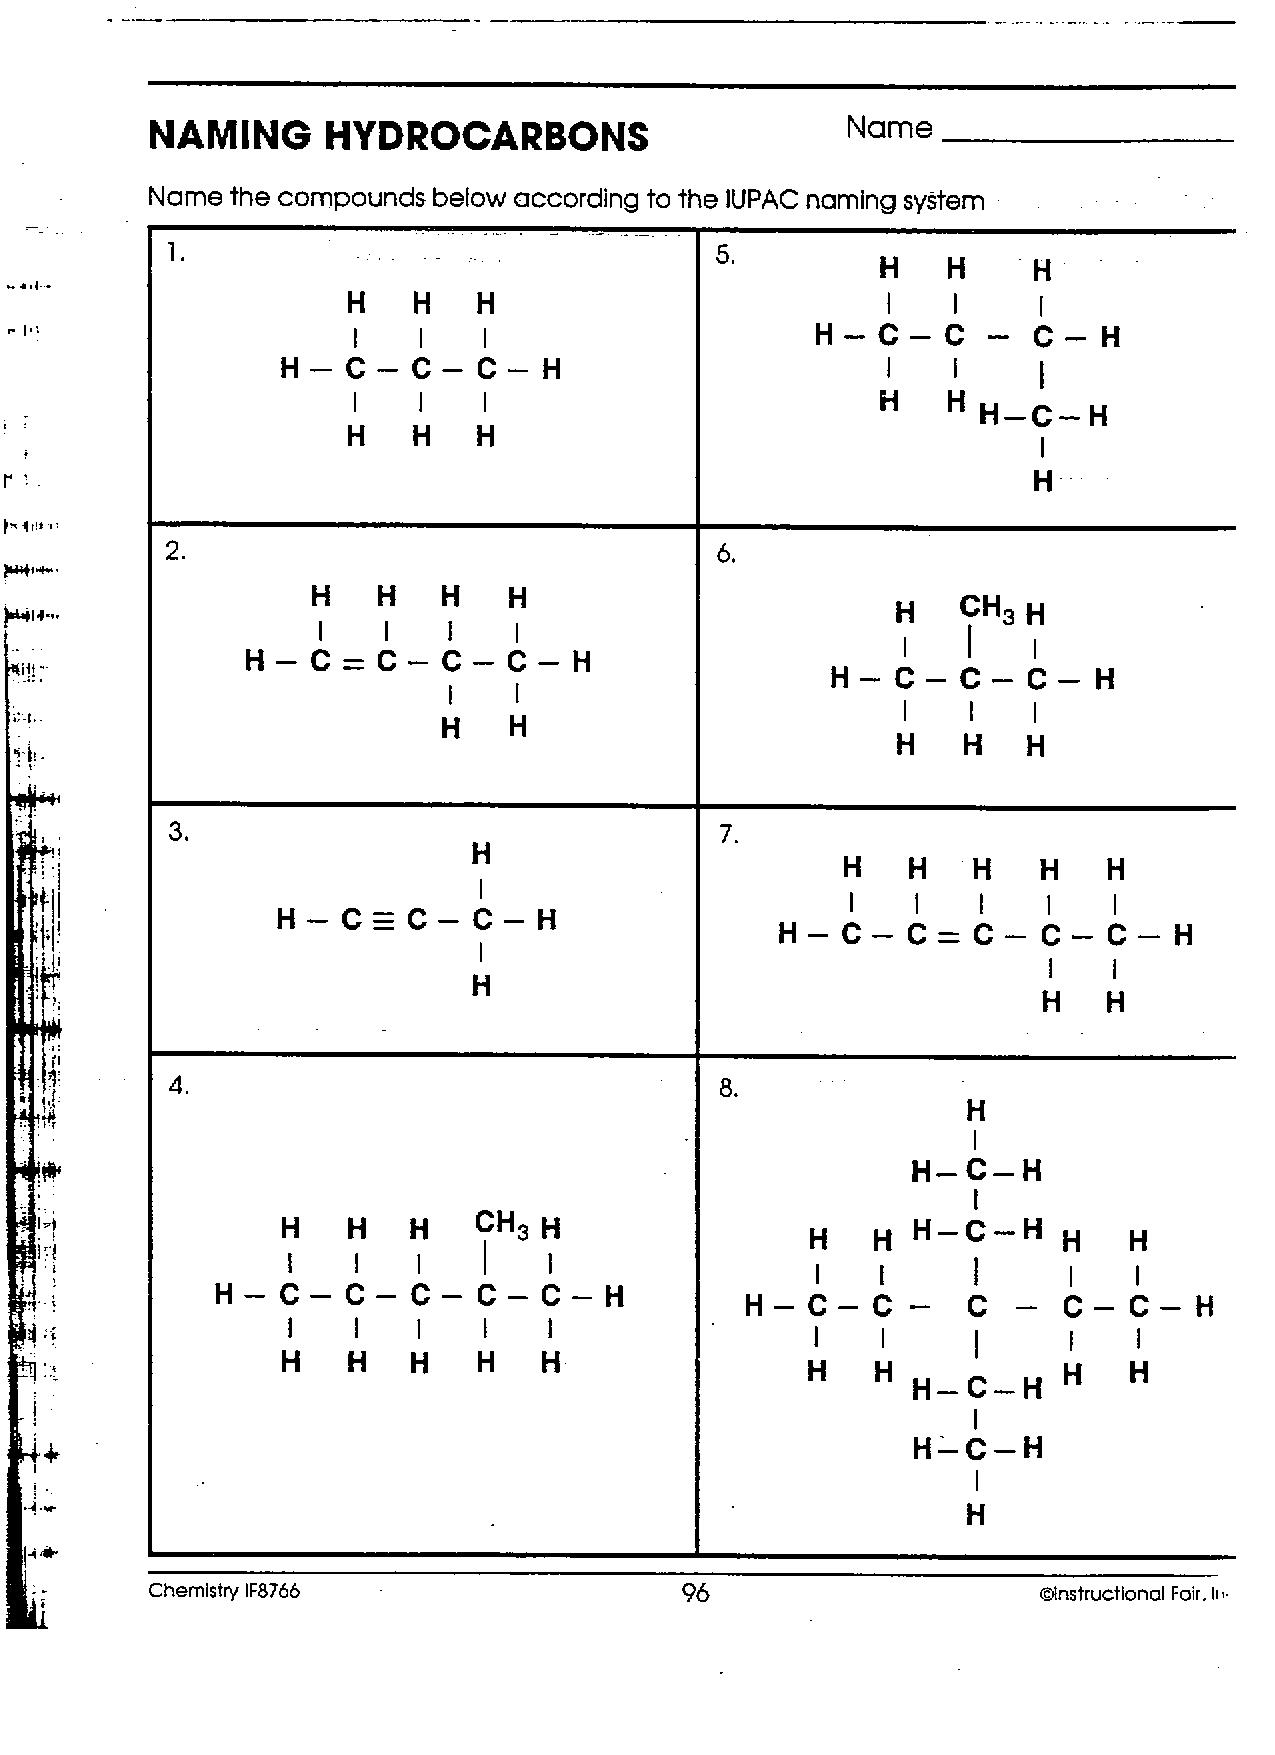 Worksheet Naming Hydrocarbons Answers